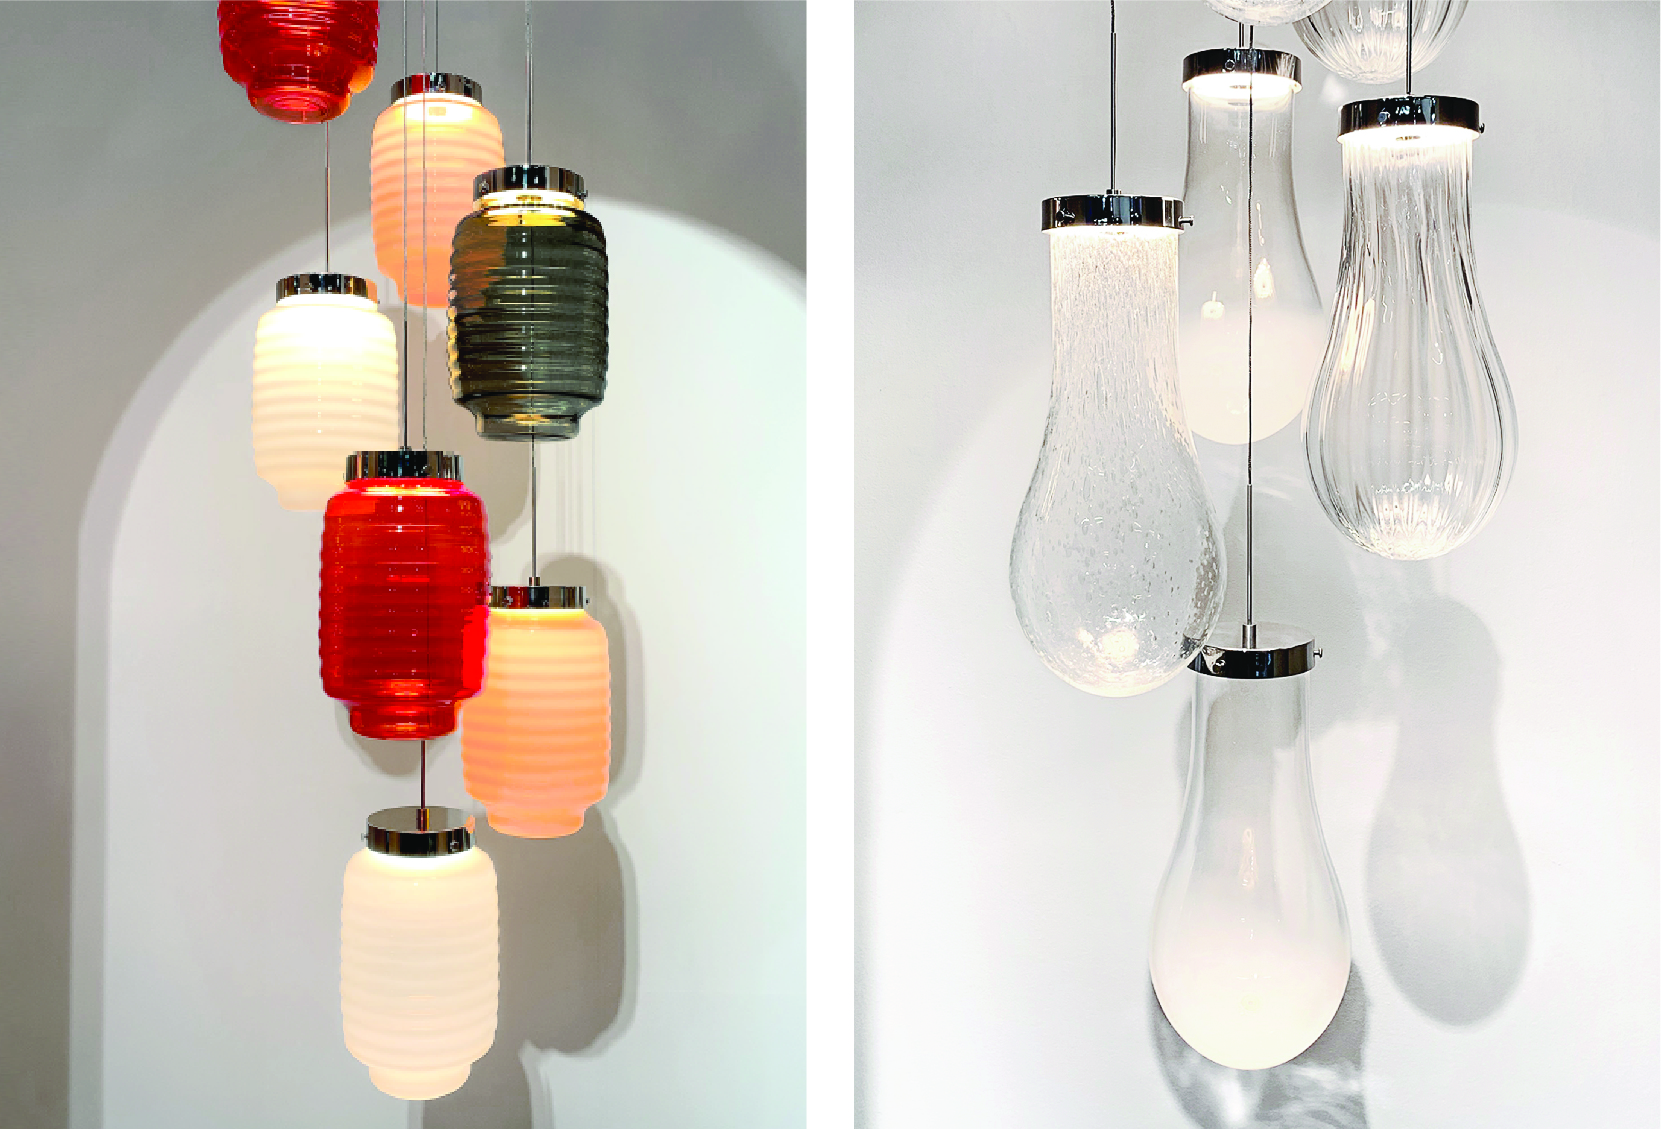 Vote for Handmade Glass Pendant Lighting - Featuring a New LED System